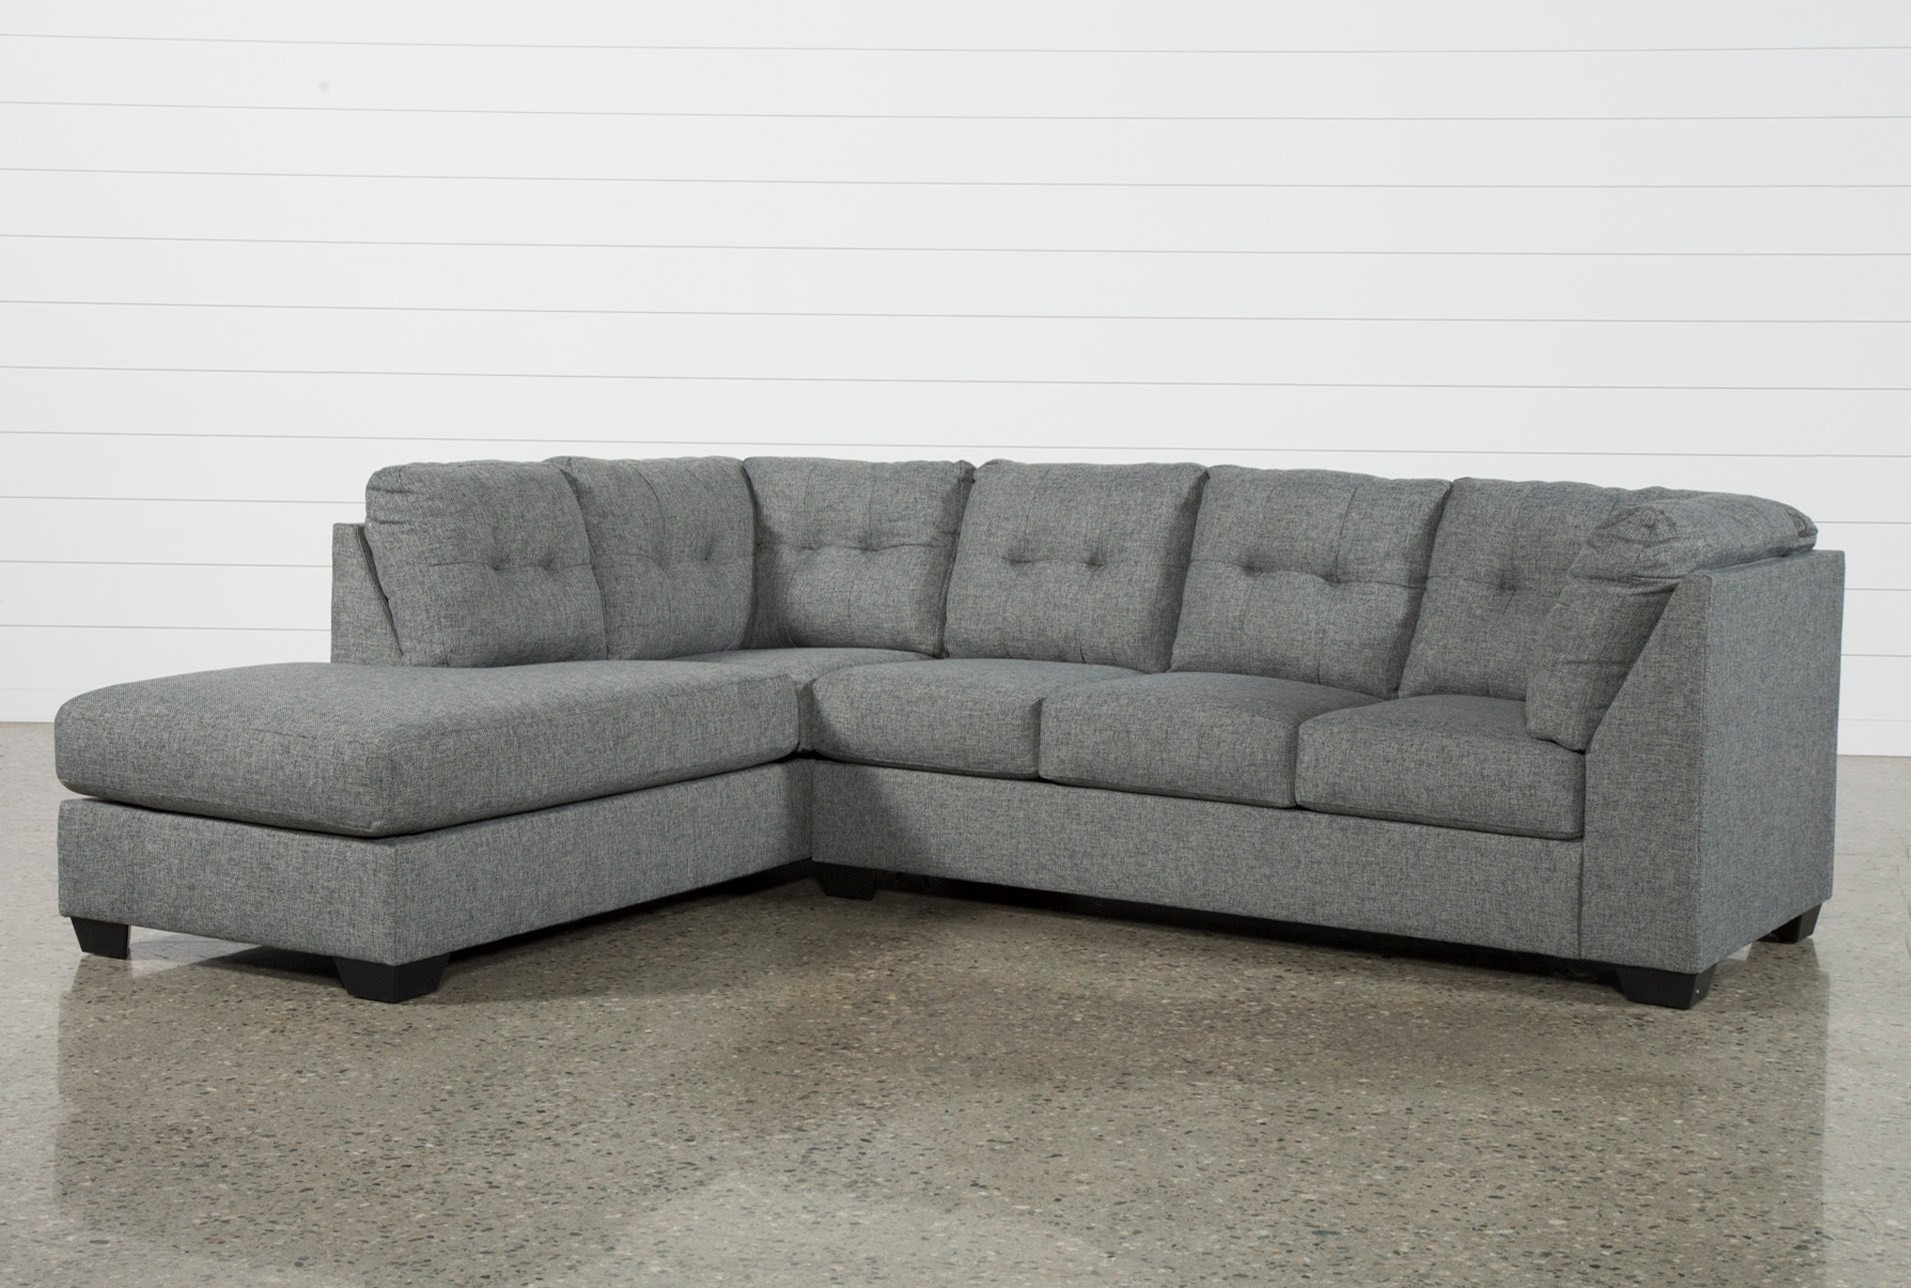 2 Piece Sectional Lucy Grey W Laf Chaise Living Spaces 225935 Fabric With Regard To Lucy Dark Grey 2 Piece Sectionals With Laf Chaise (Image 1 of 25)